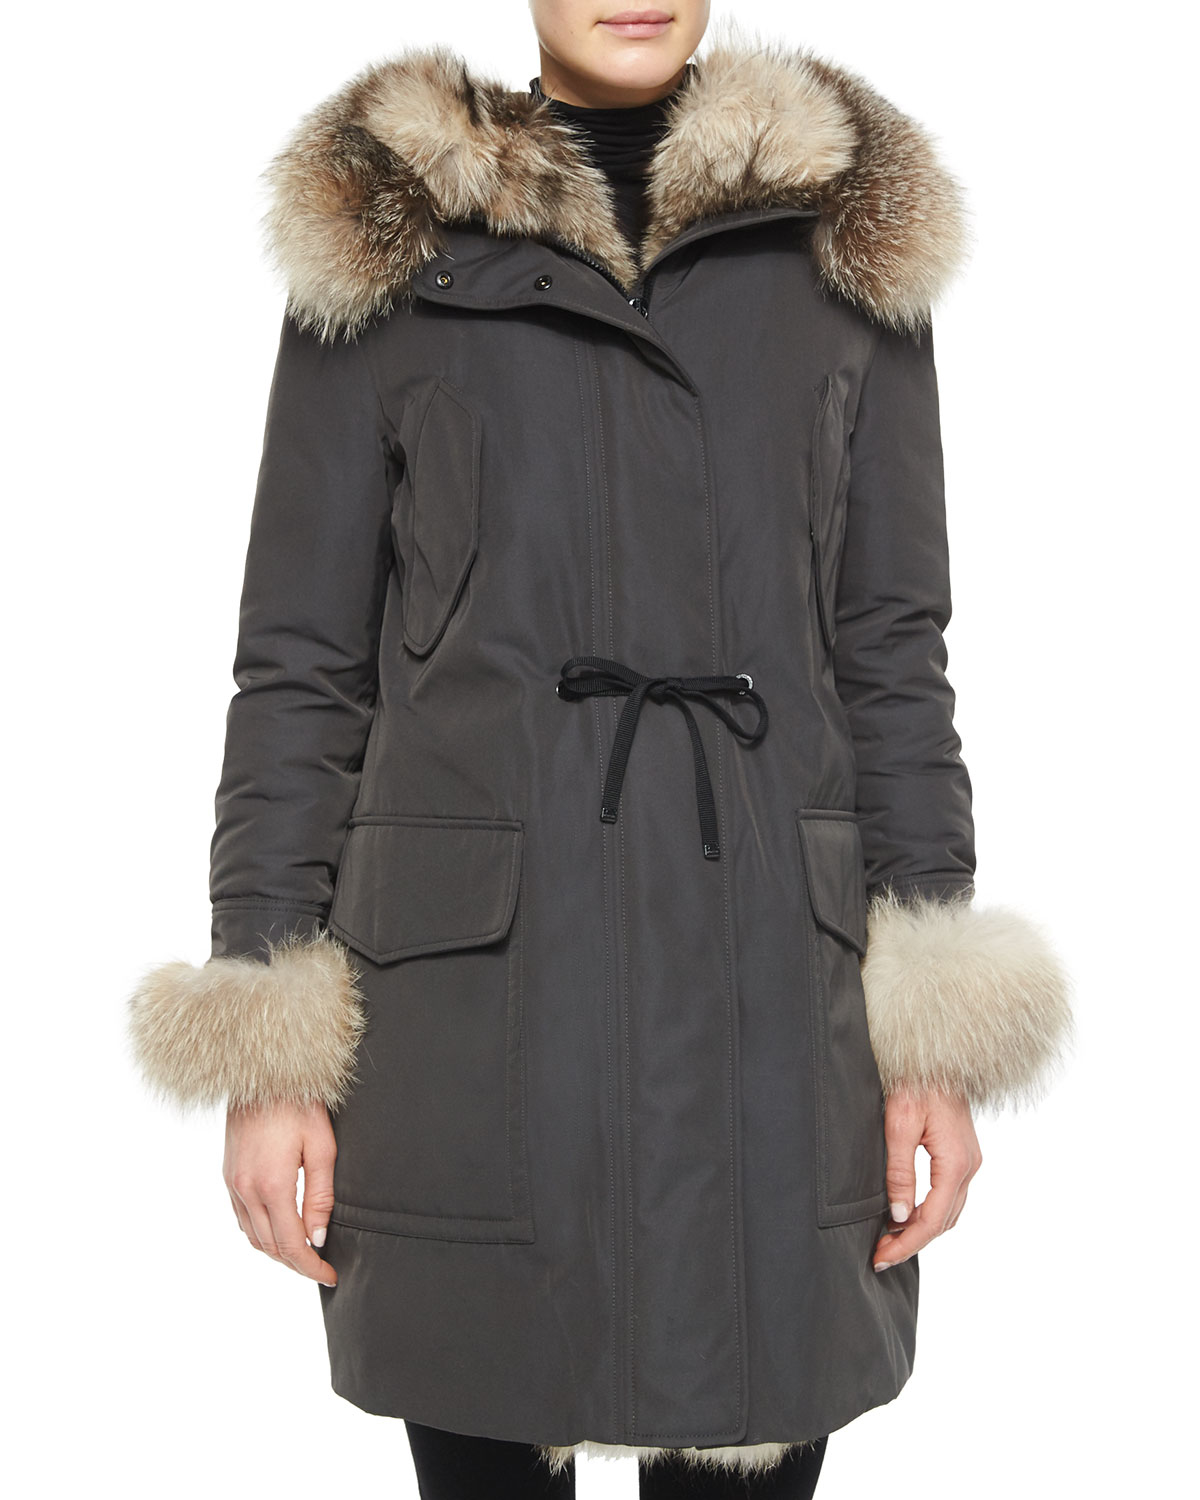 4cc403ccd lace up in b8f4d 2cd1d moncler fur trimmed hooded coat ...